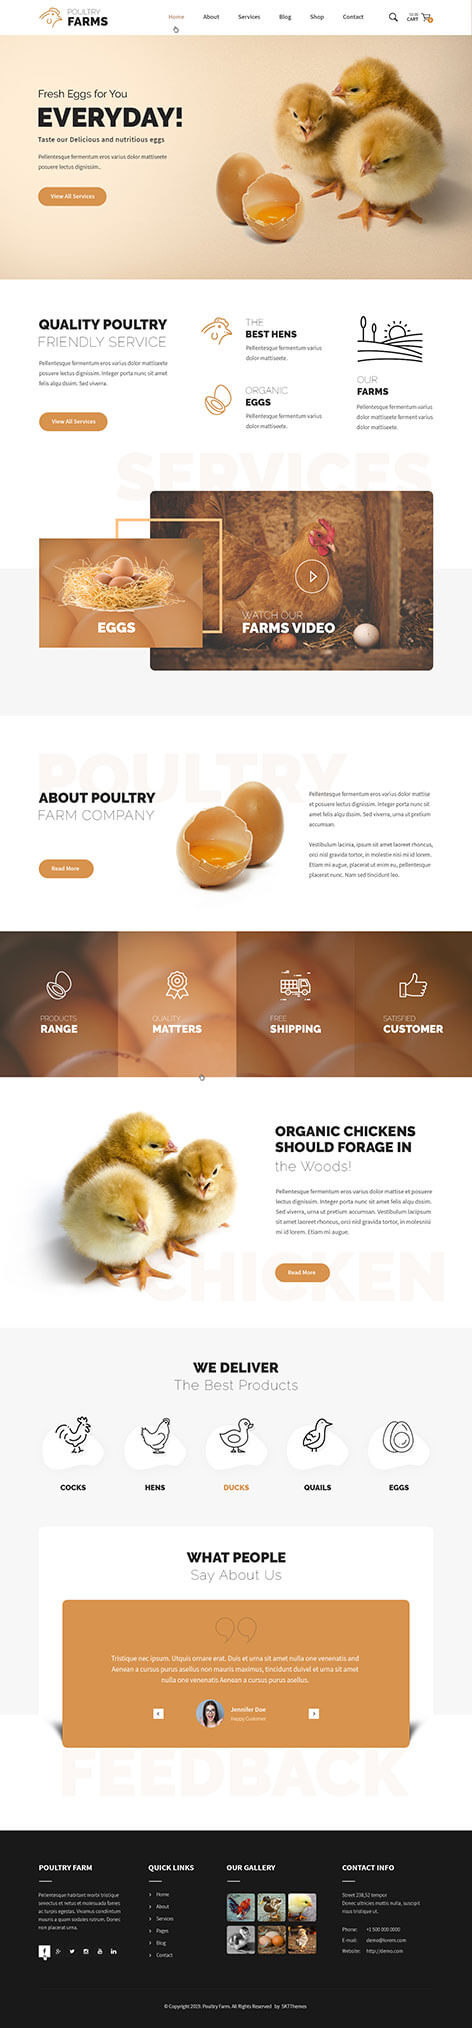 poultry farm WordPress theme